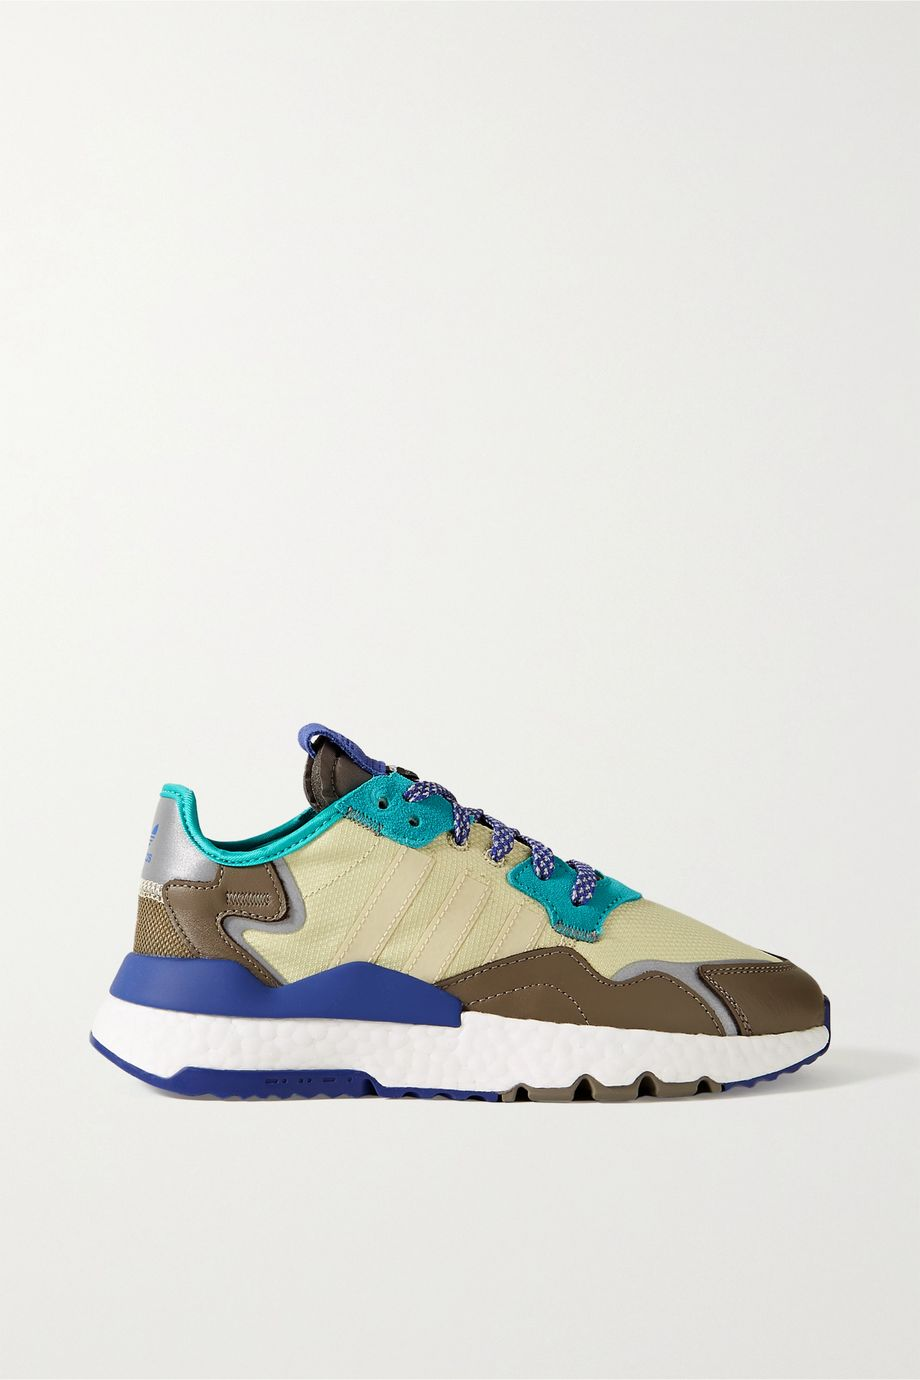 adidas Originals Nite Jogger ripstop, mesh, suede and leather sneakers